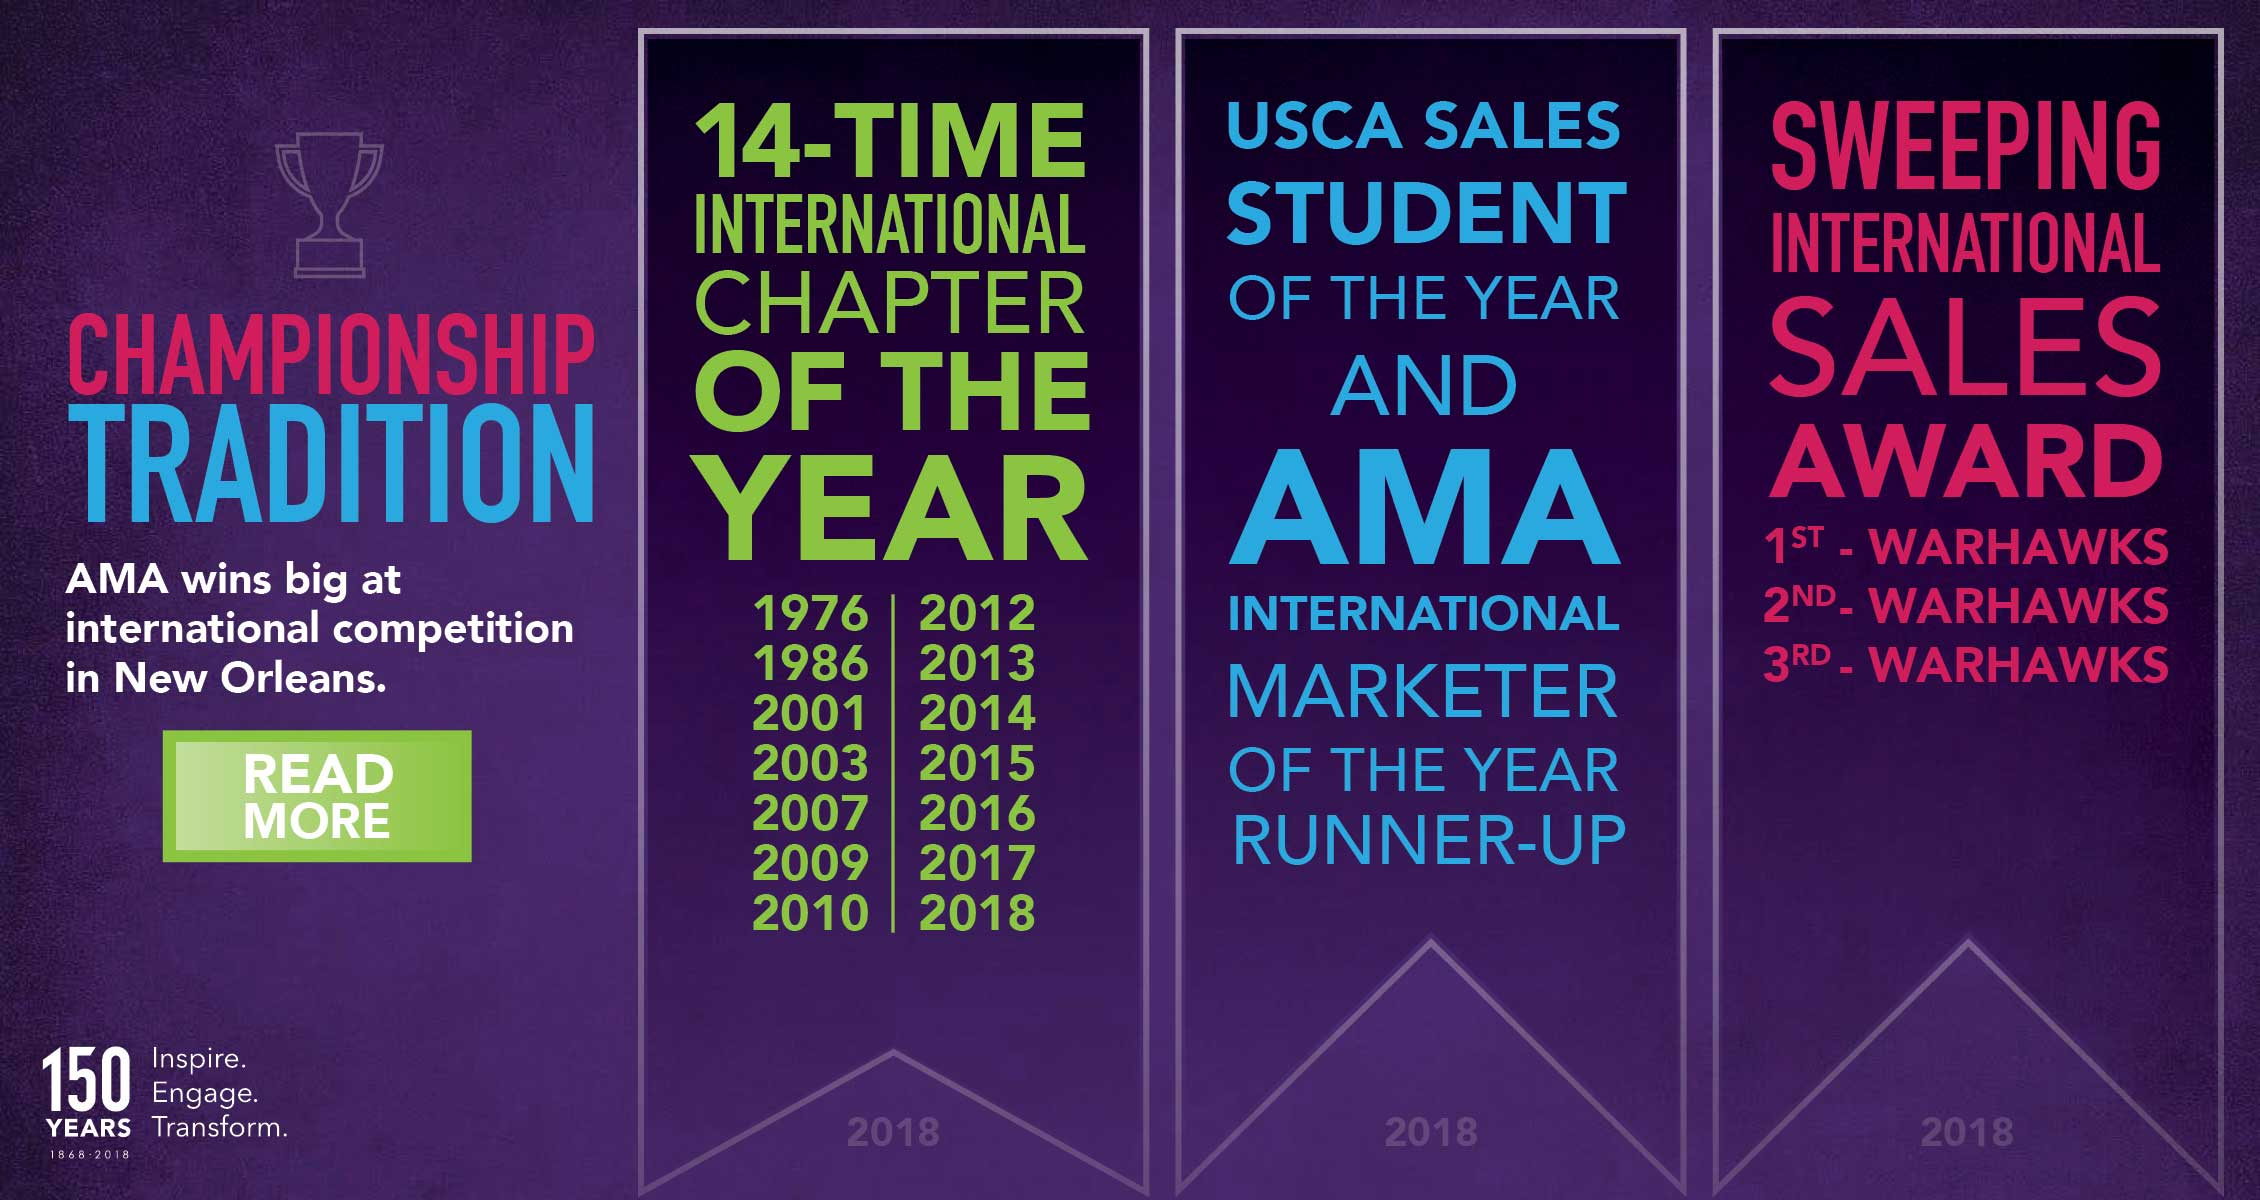 American Marketing Association: A Championship tradition